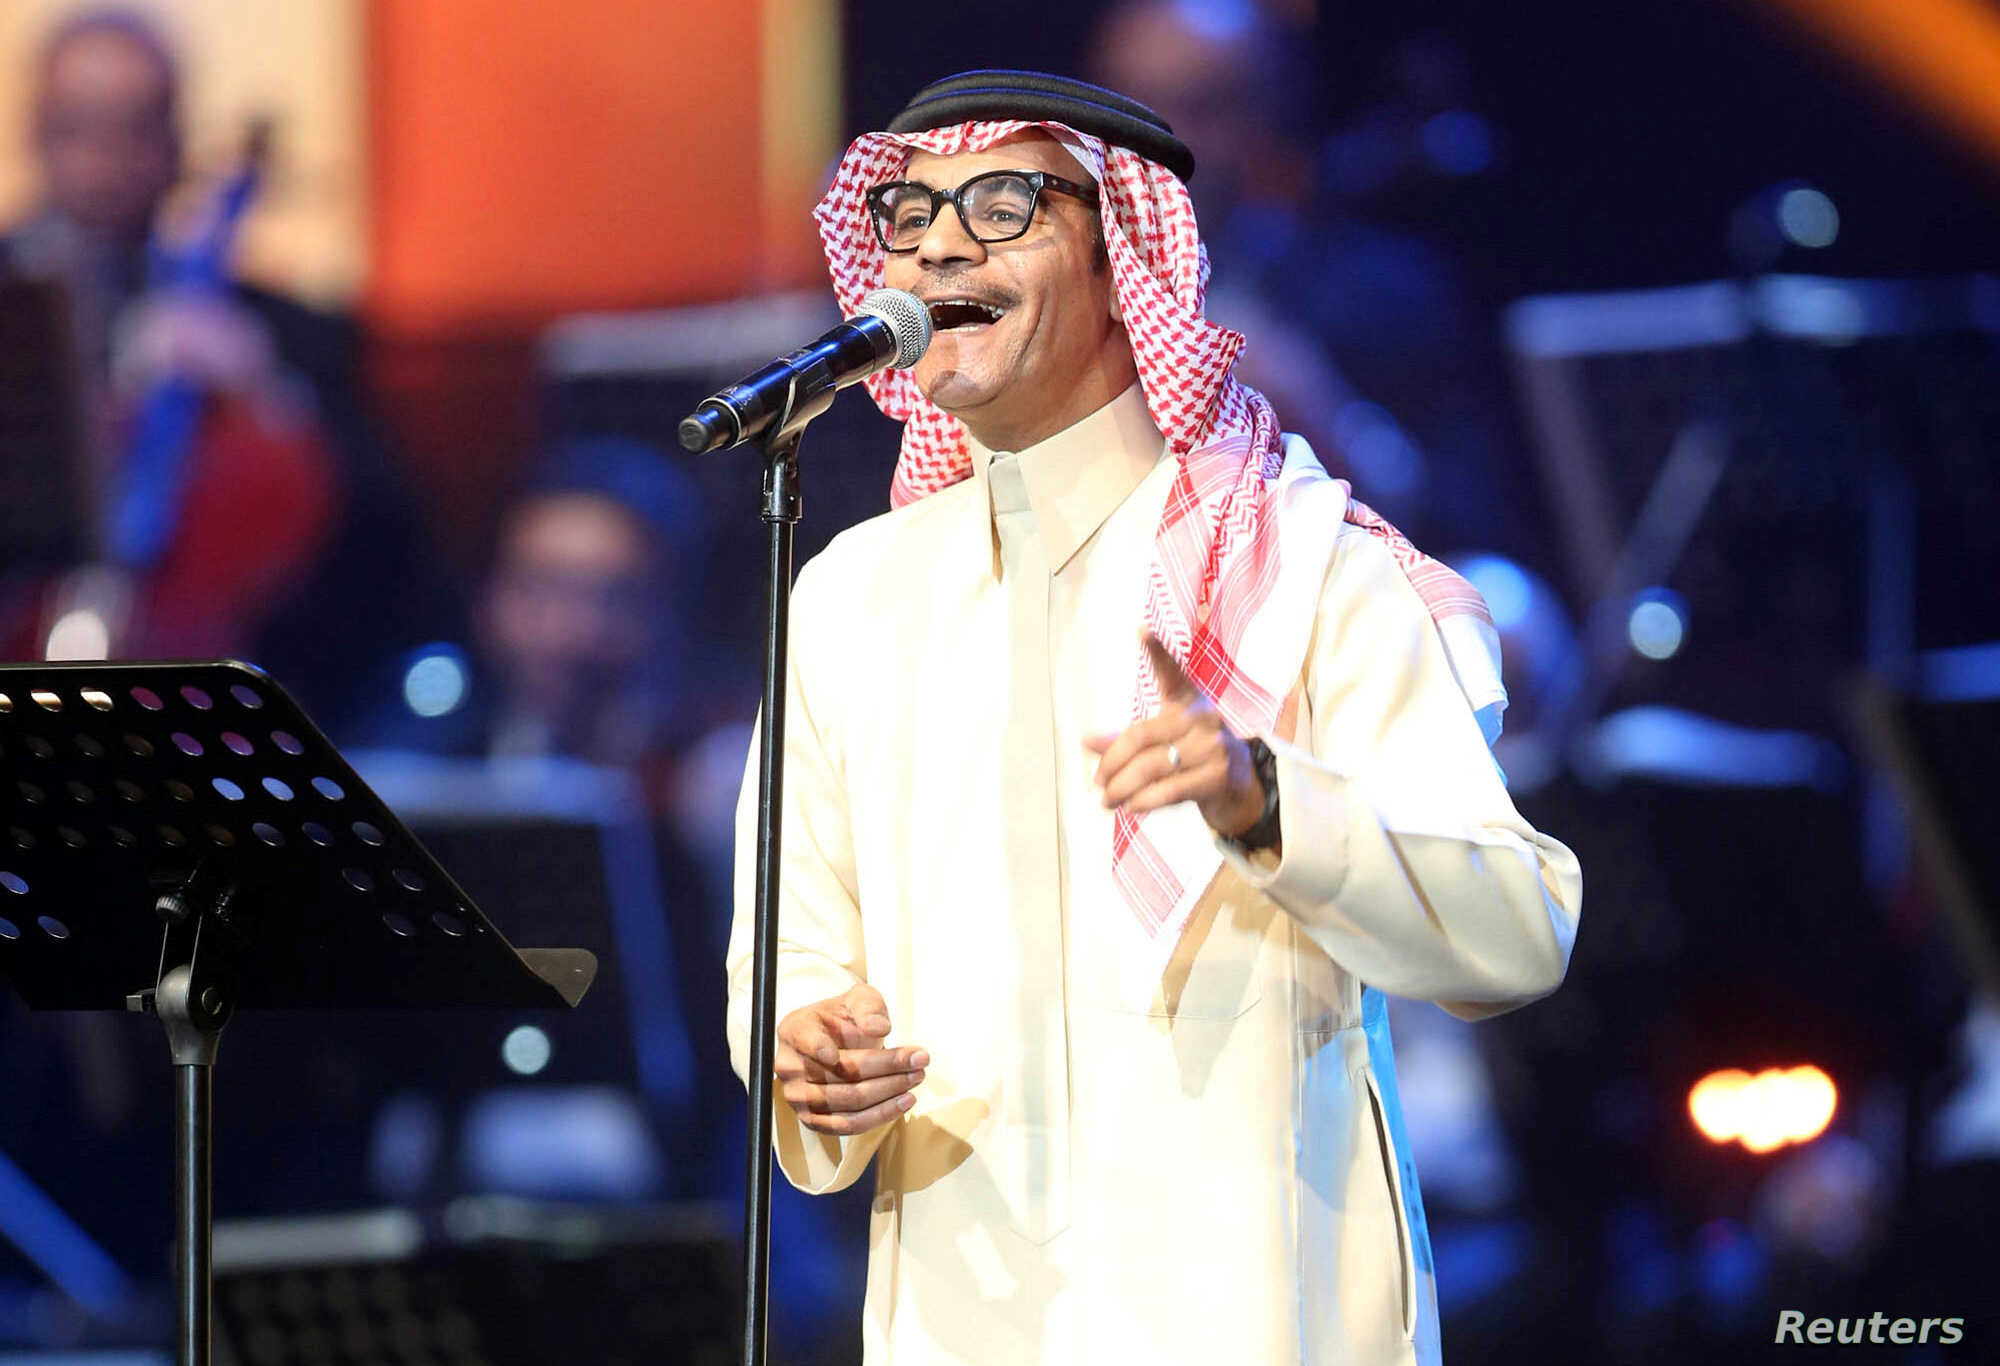 Quietly at First, Music Comes Back to Saudi Arabia   Voice